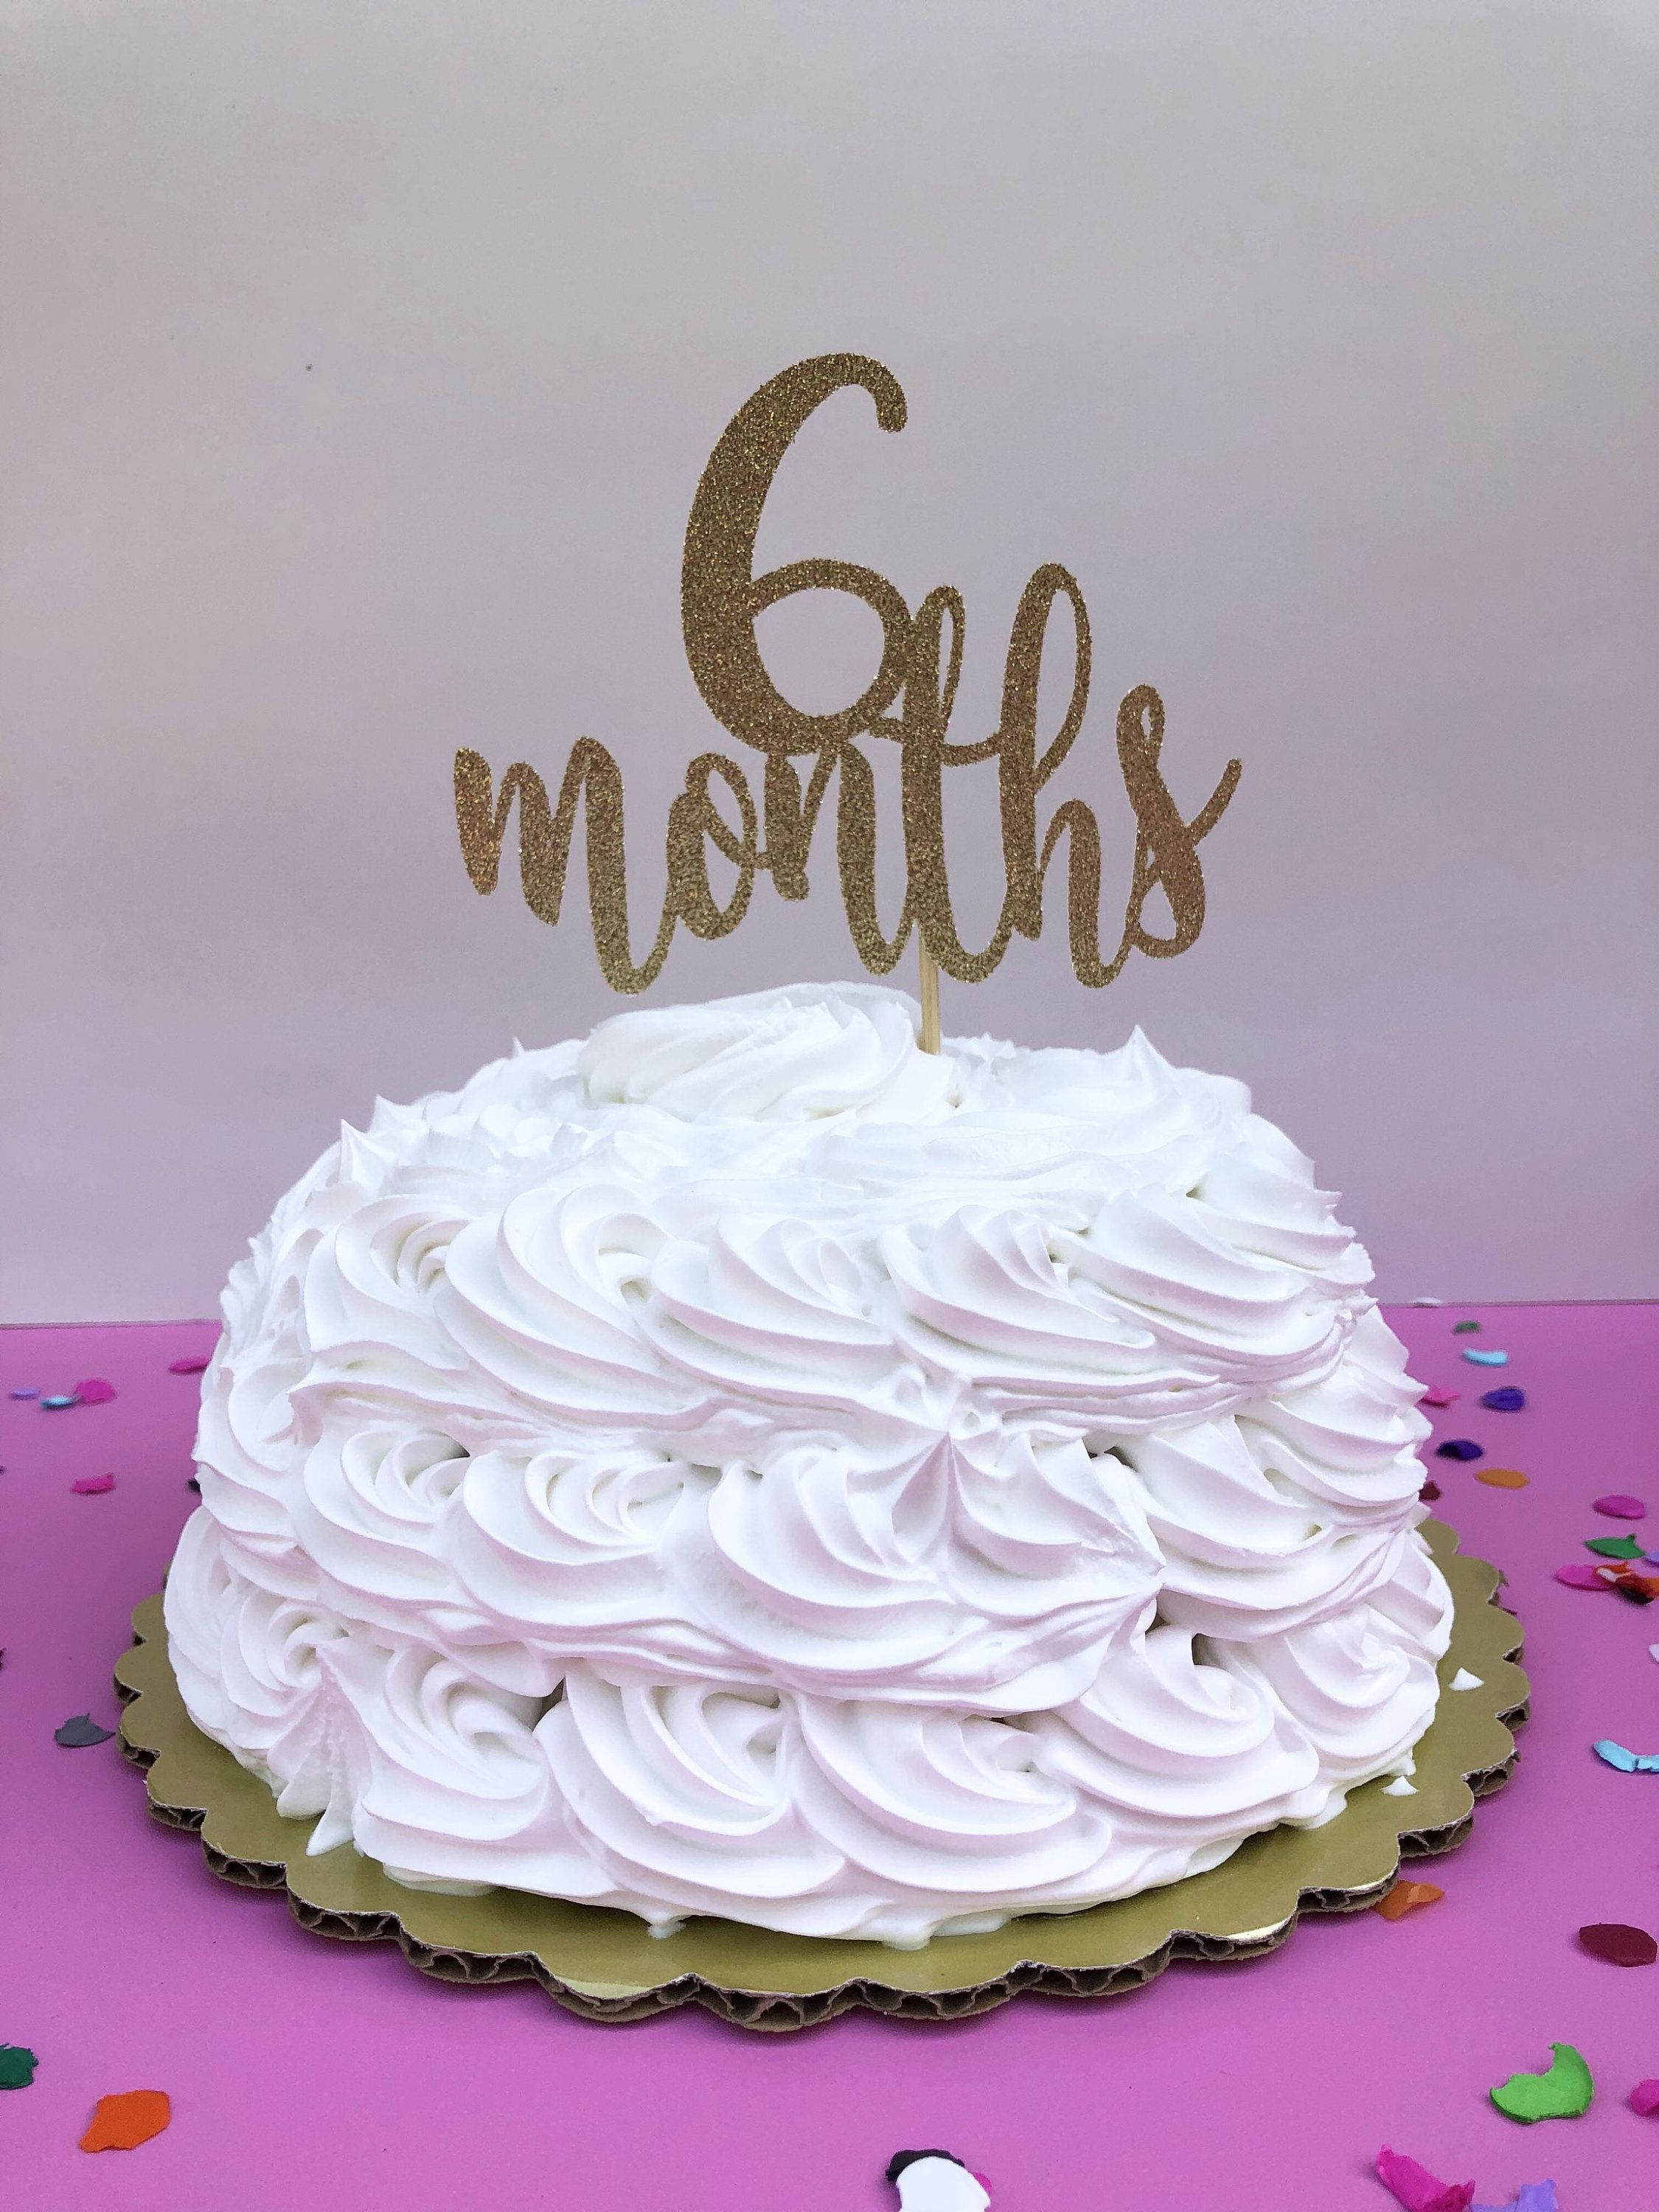 6 Months Cake Topper 1 2 Birthday Glitter Smash Month Photography Prop Sparkly Half By PrettyCuteCuts